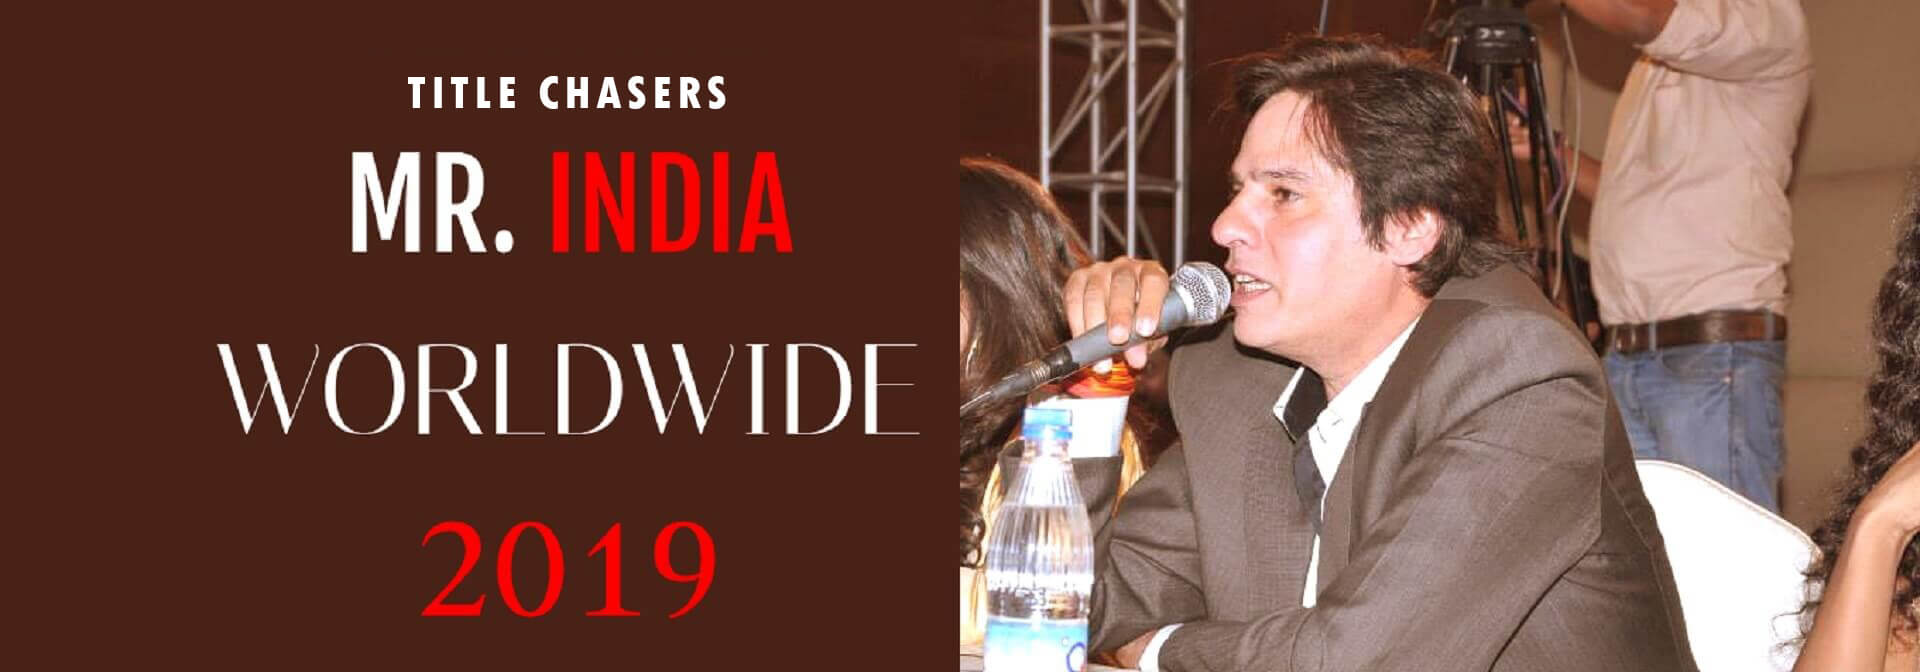 Mr India Worldwide about